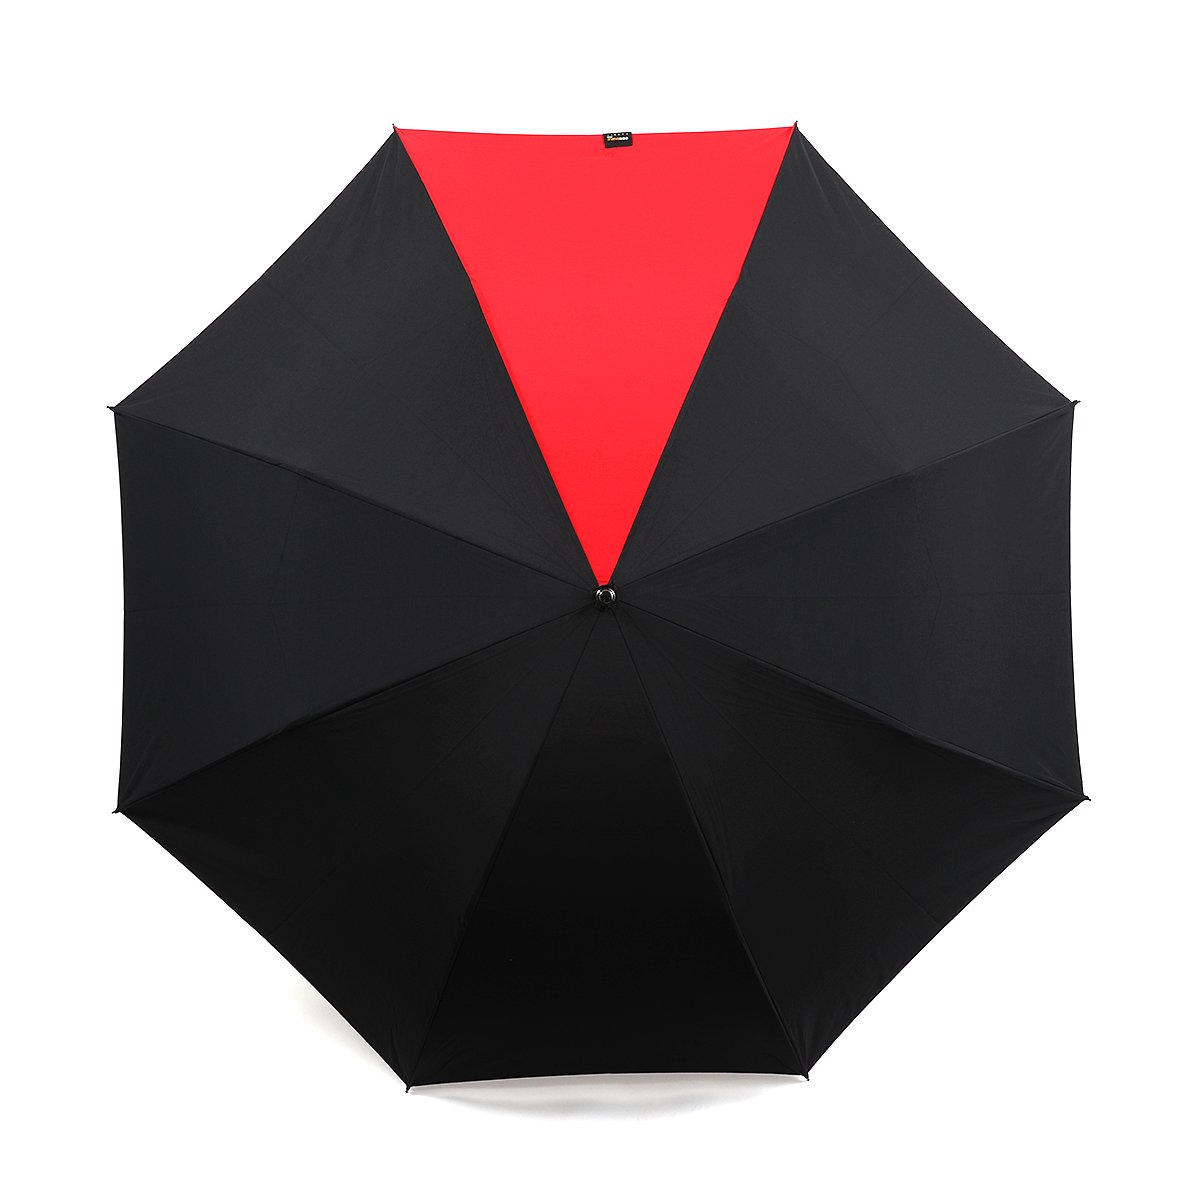 608K CORDURA FOLDING UMBRELLA 詳細画像2